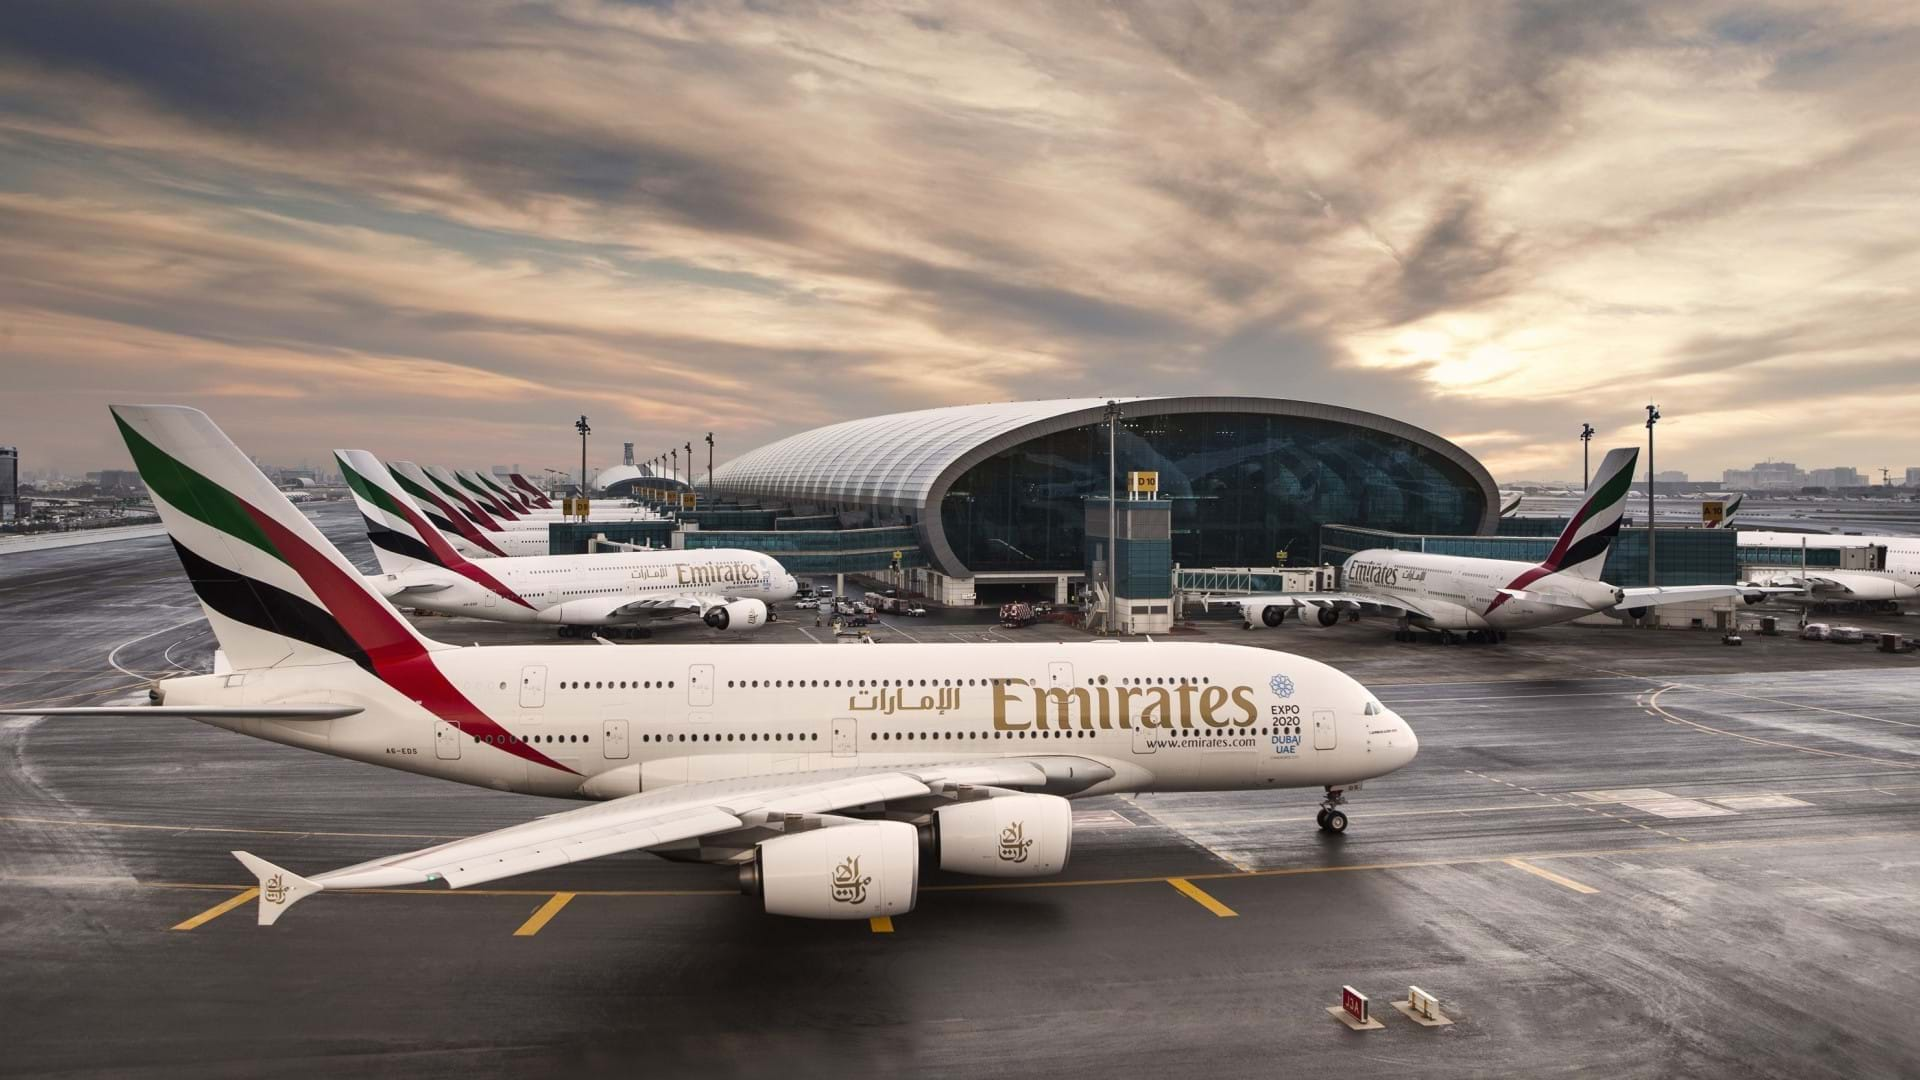 Emirates Airlines Online Booking